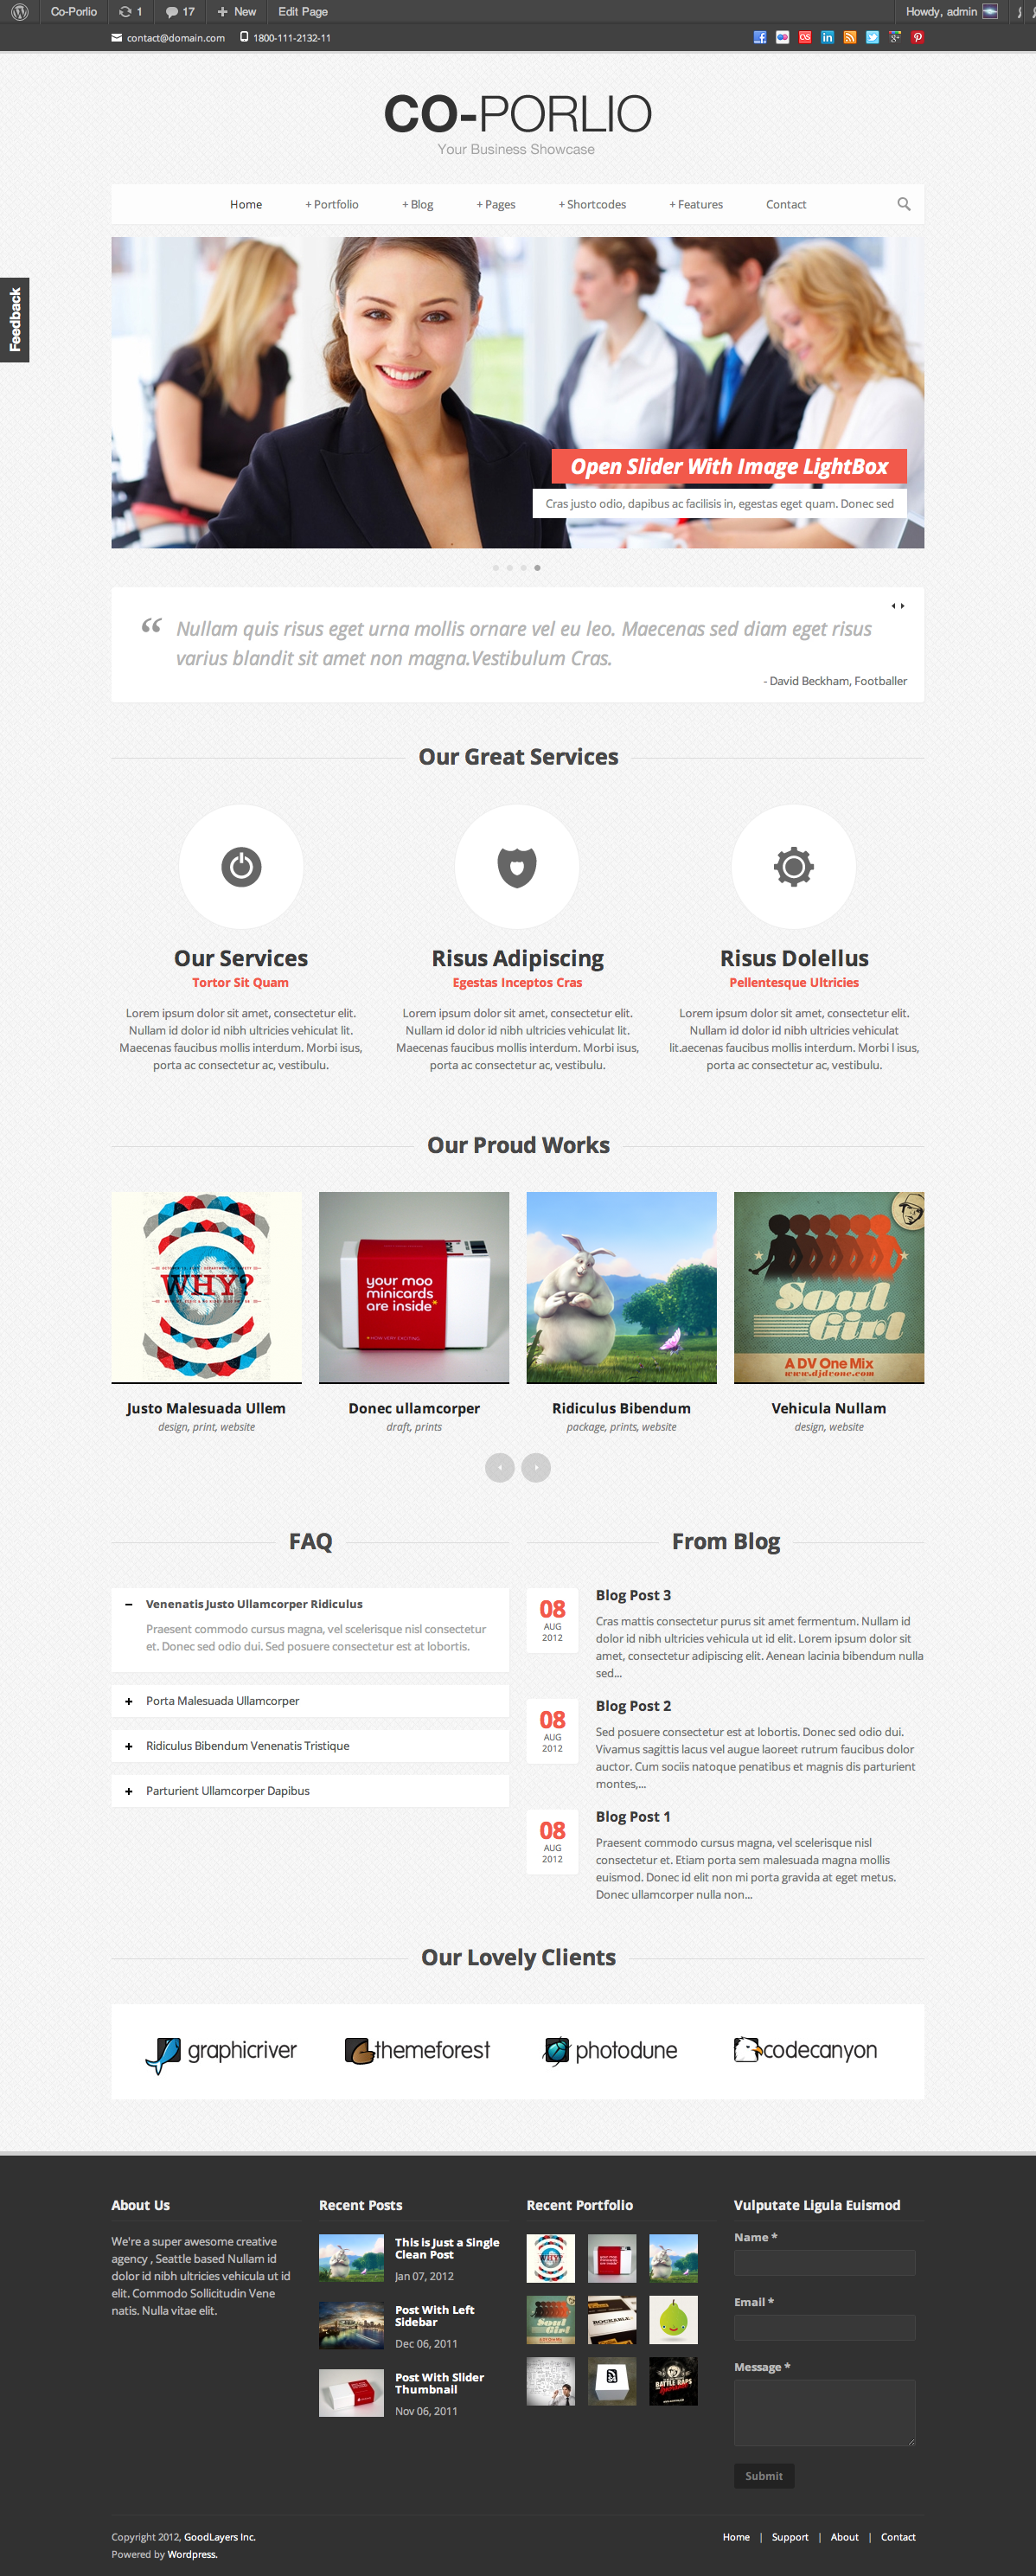 Co-Porlio: Feature Rich Wordpress Theme  - index page with color changed